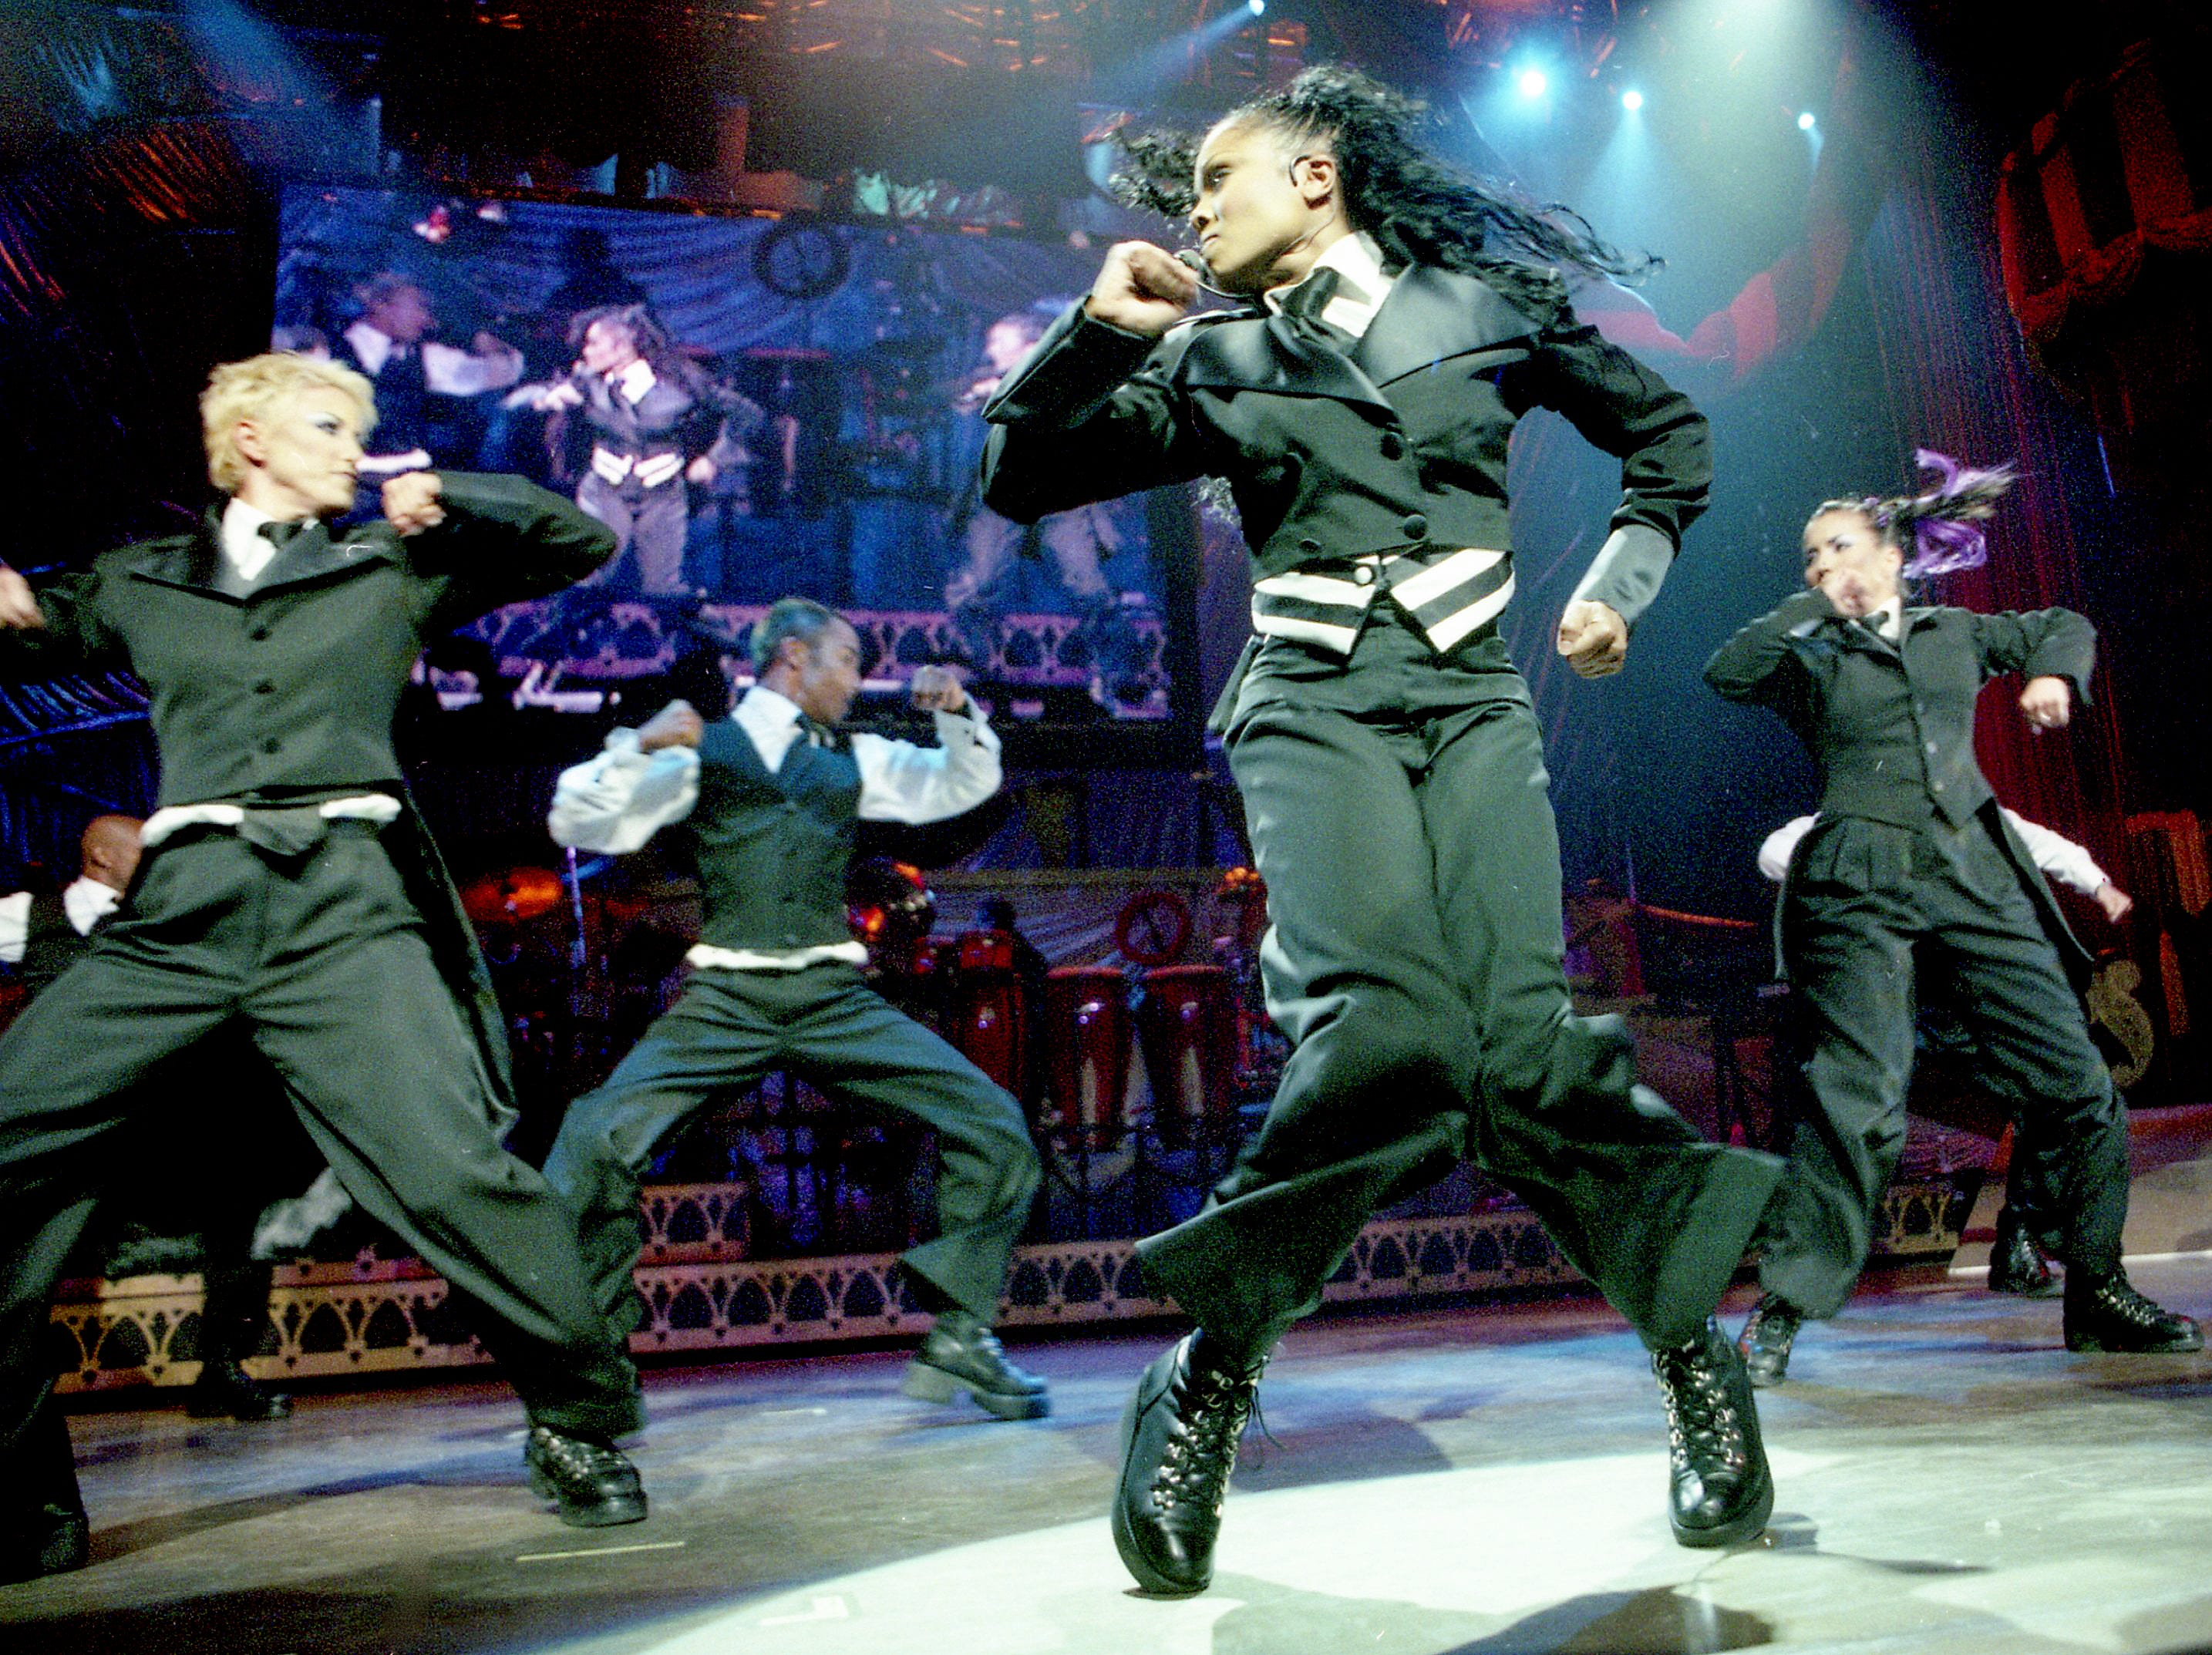 Janet Jackson preforms in new Bi-Lo Center on the area's opening night Thursday, September 3, 1998.